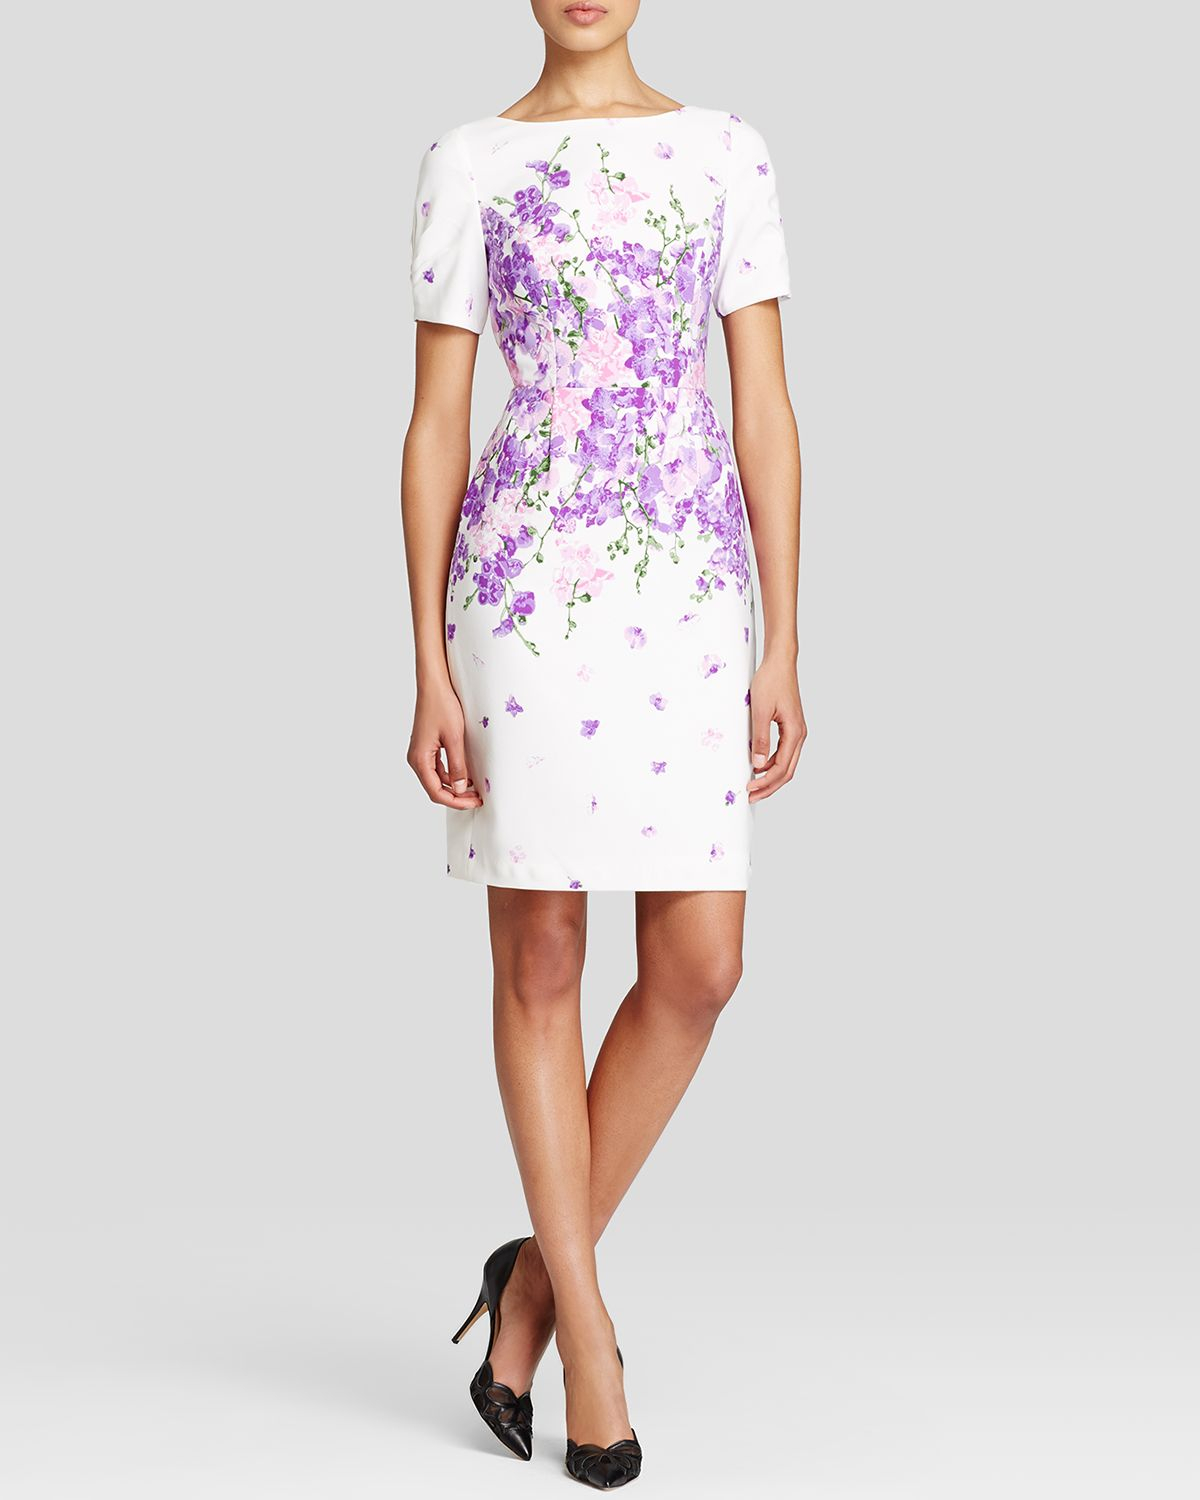 6455bb4ddc8 Gallery. Previously sold at  Bloomingdale s · Women s Party Dresses Women s Adrianna  Papell Sheath ...